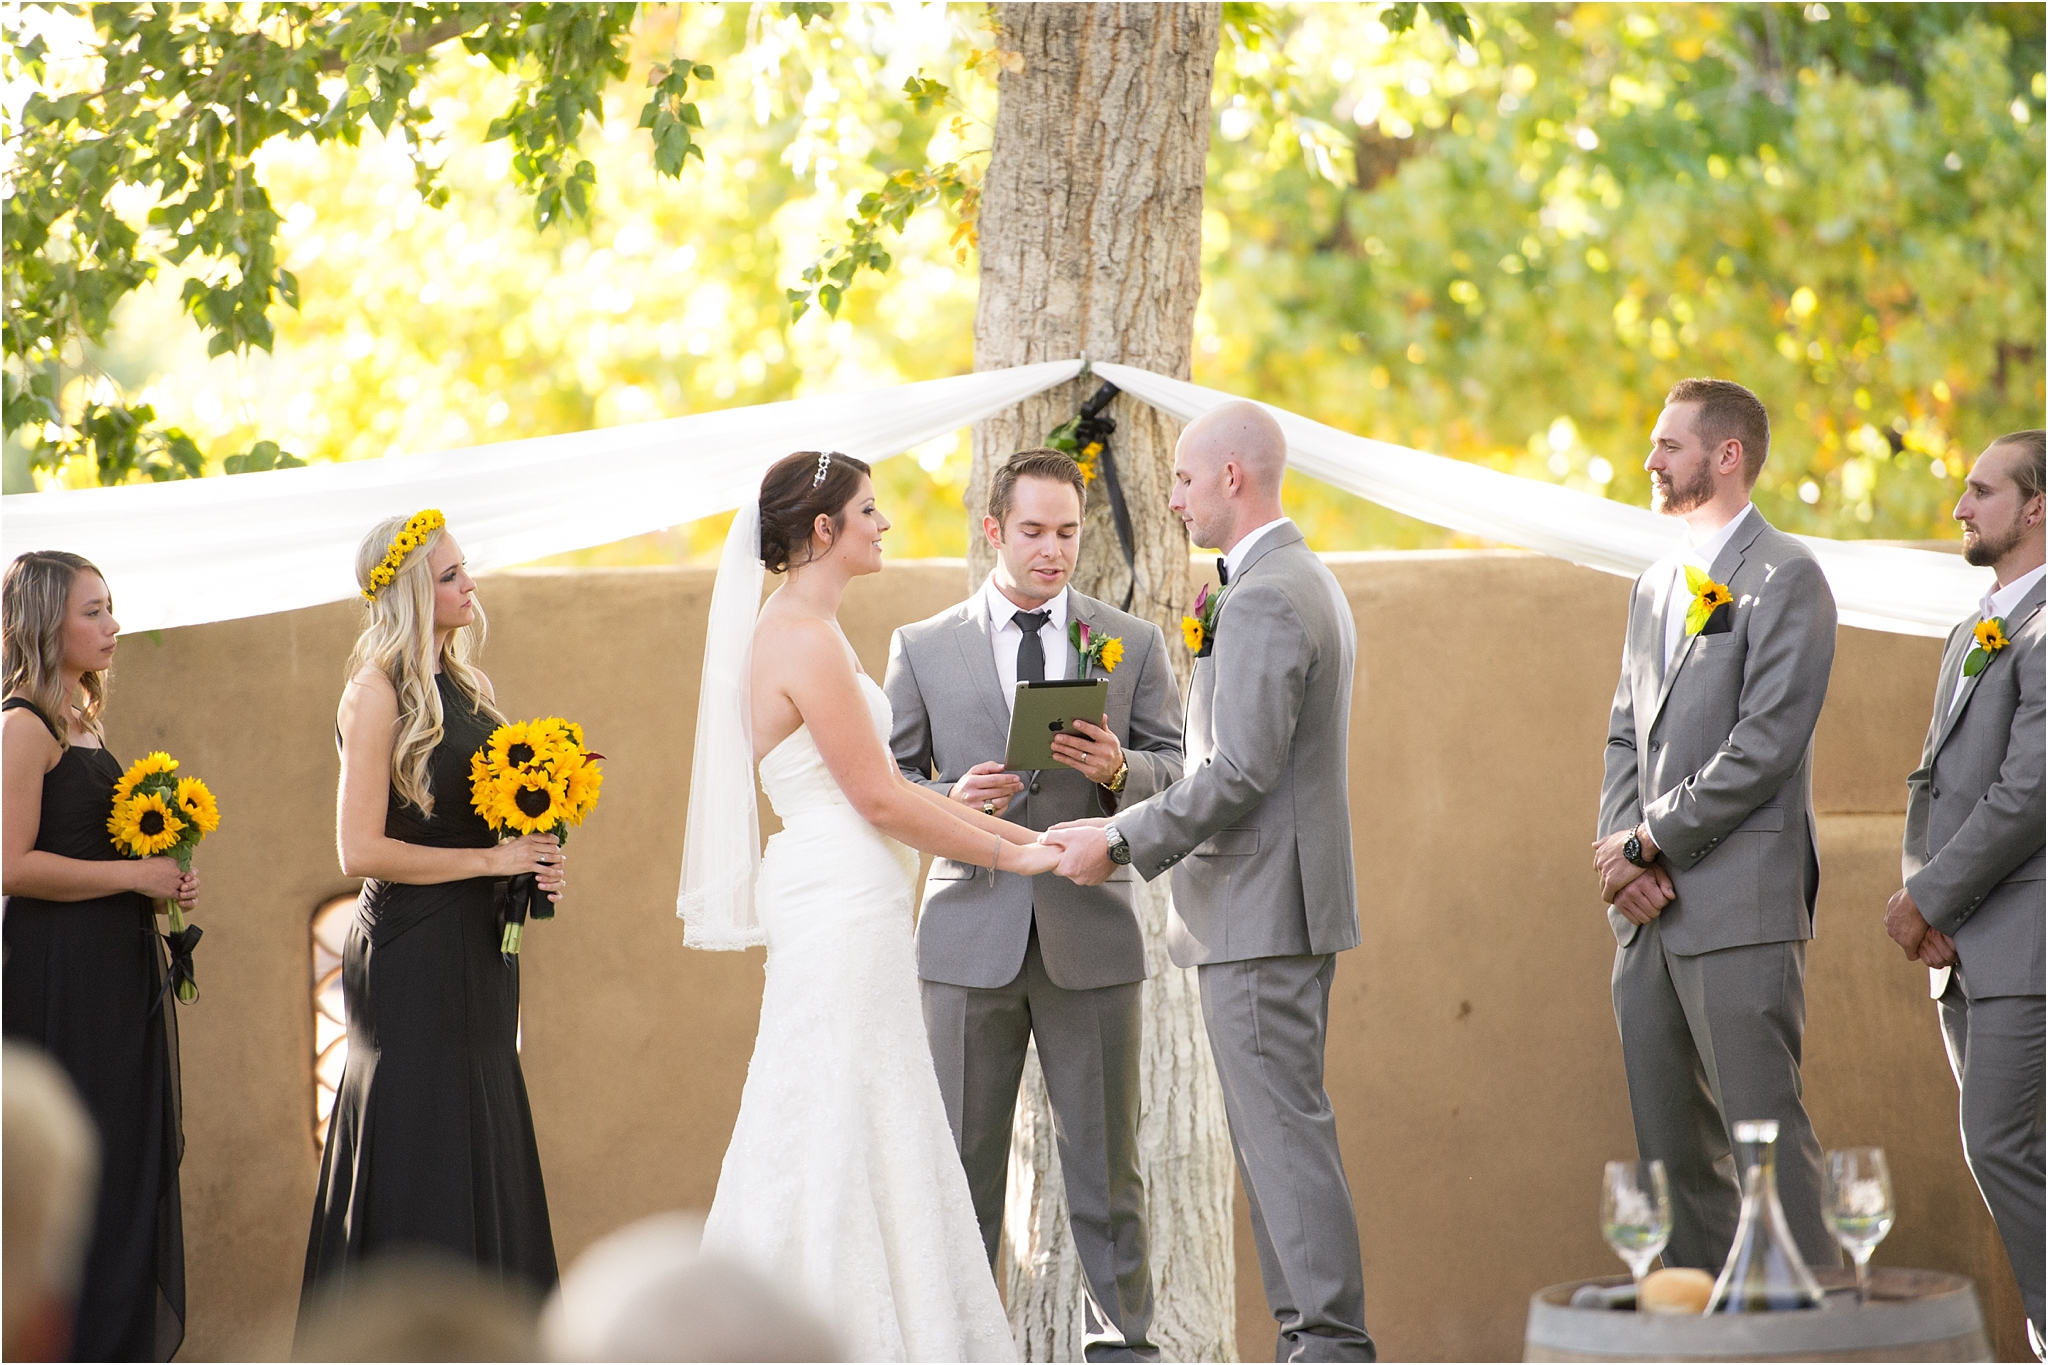 kayla kitts photography - albuquerque wedding photographer - orange september - cjohnson makeup_0031.jpg